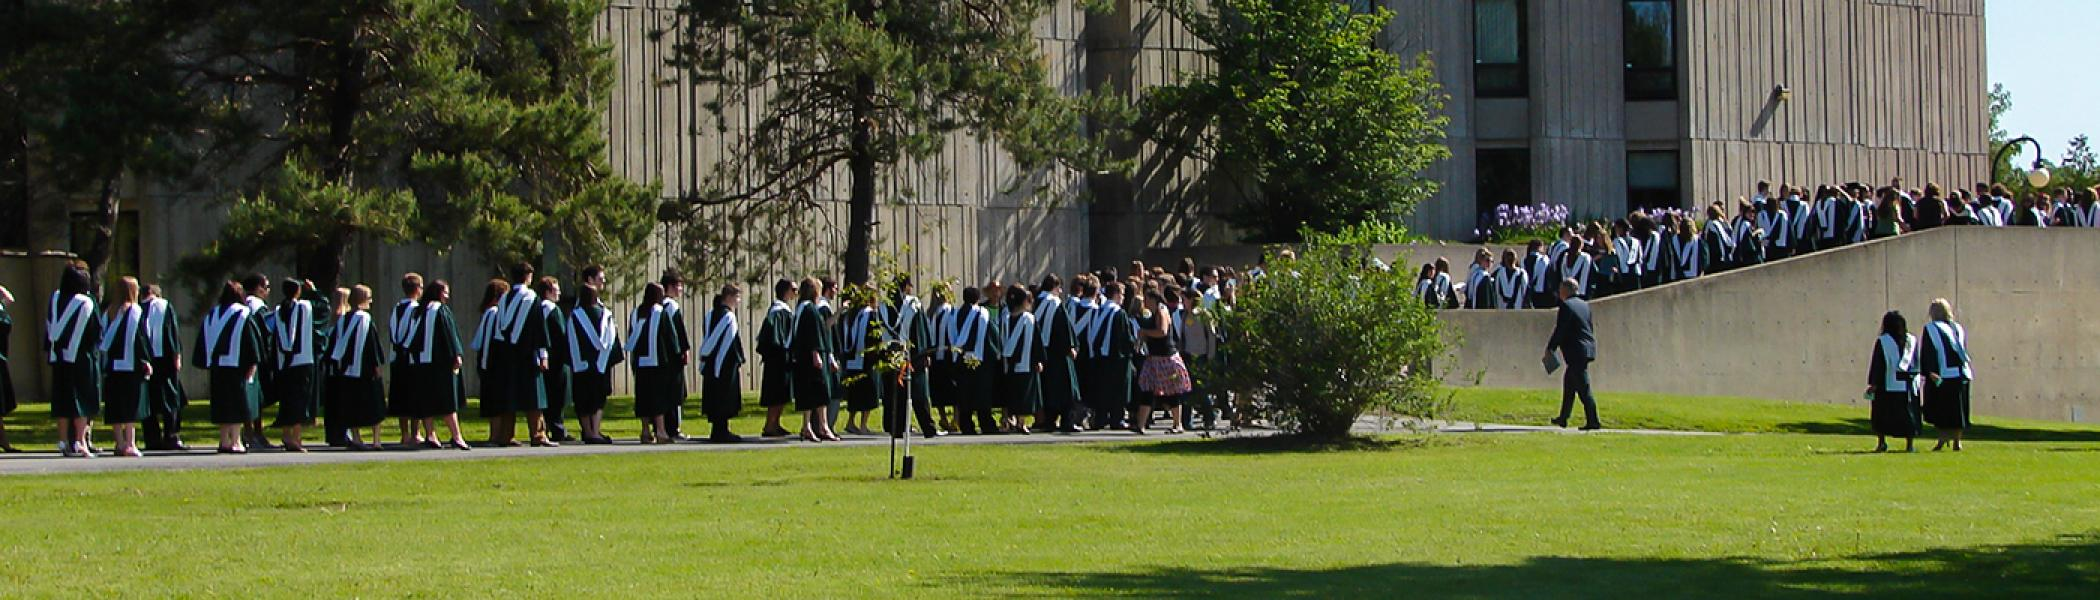 A long line of history graduates waling past Lady Eaton College in their convocation gowns